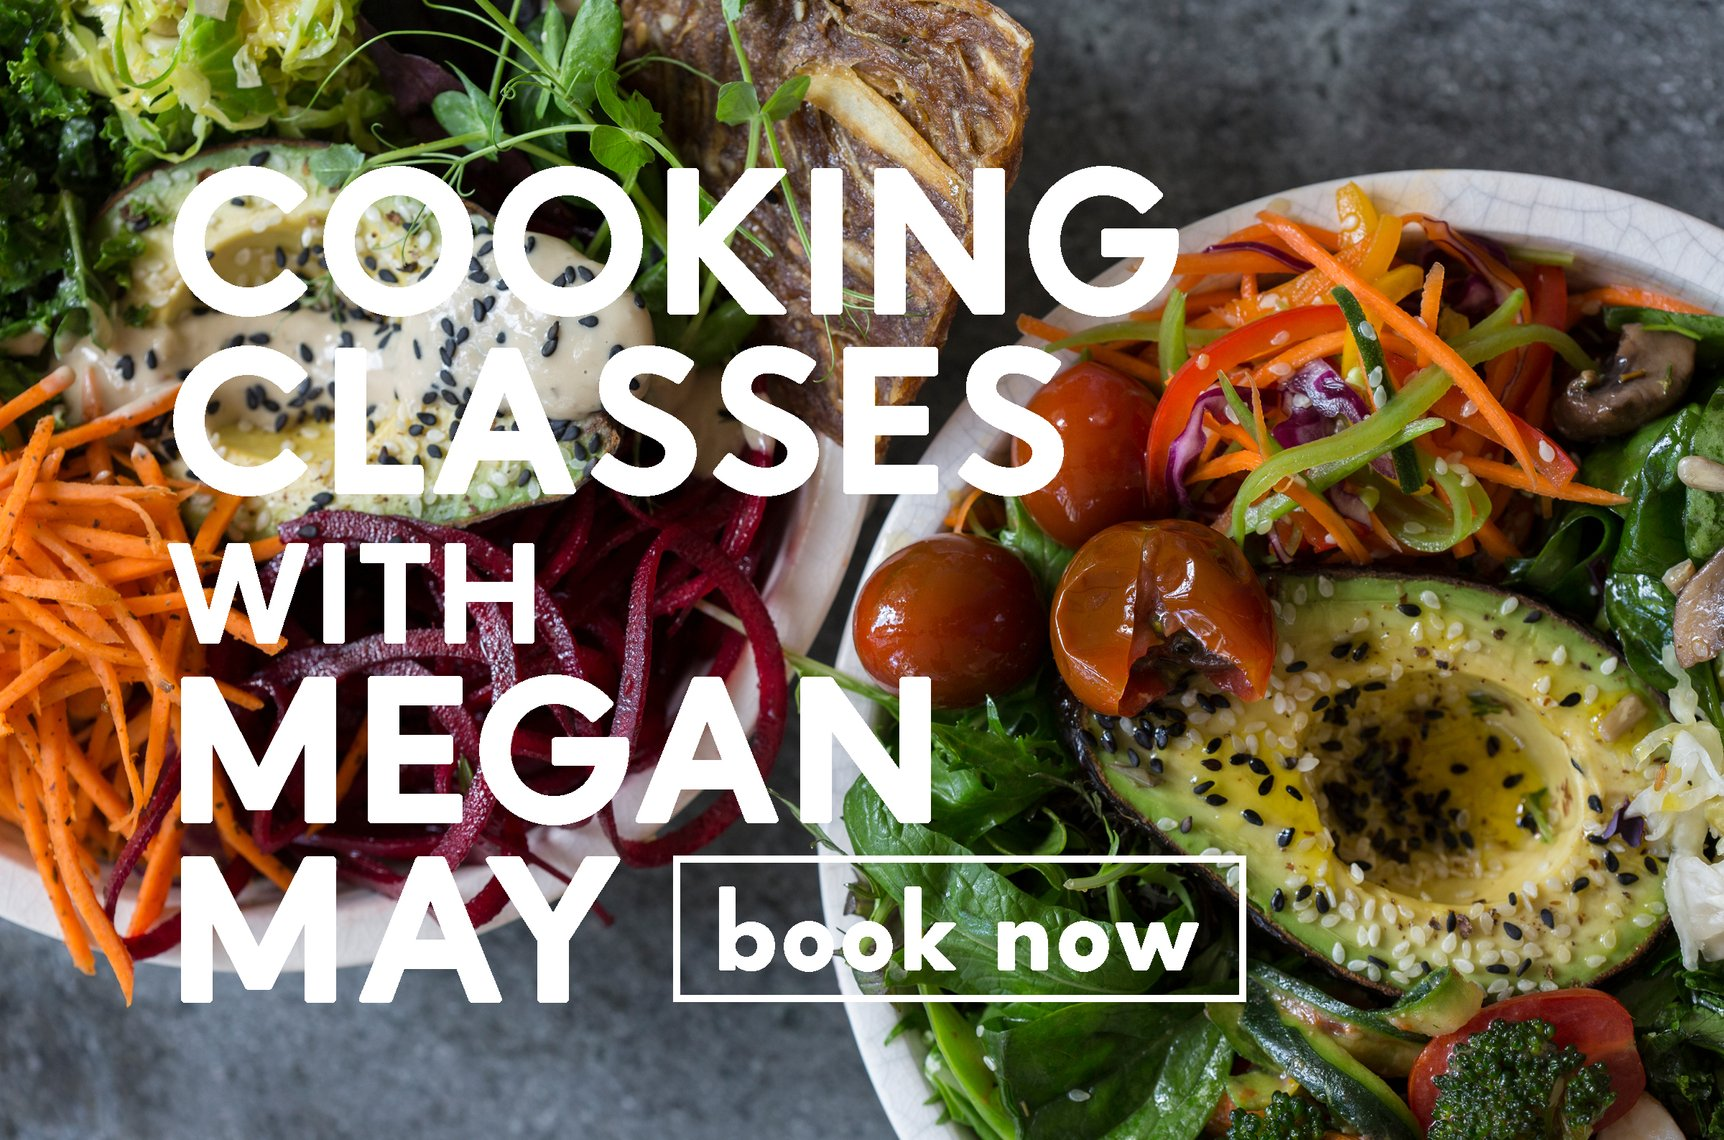 Megan May's Cooking Classes